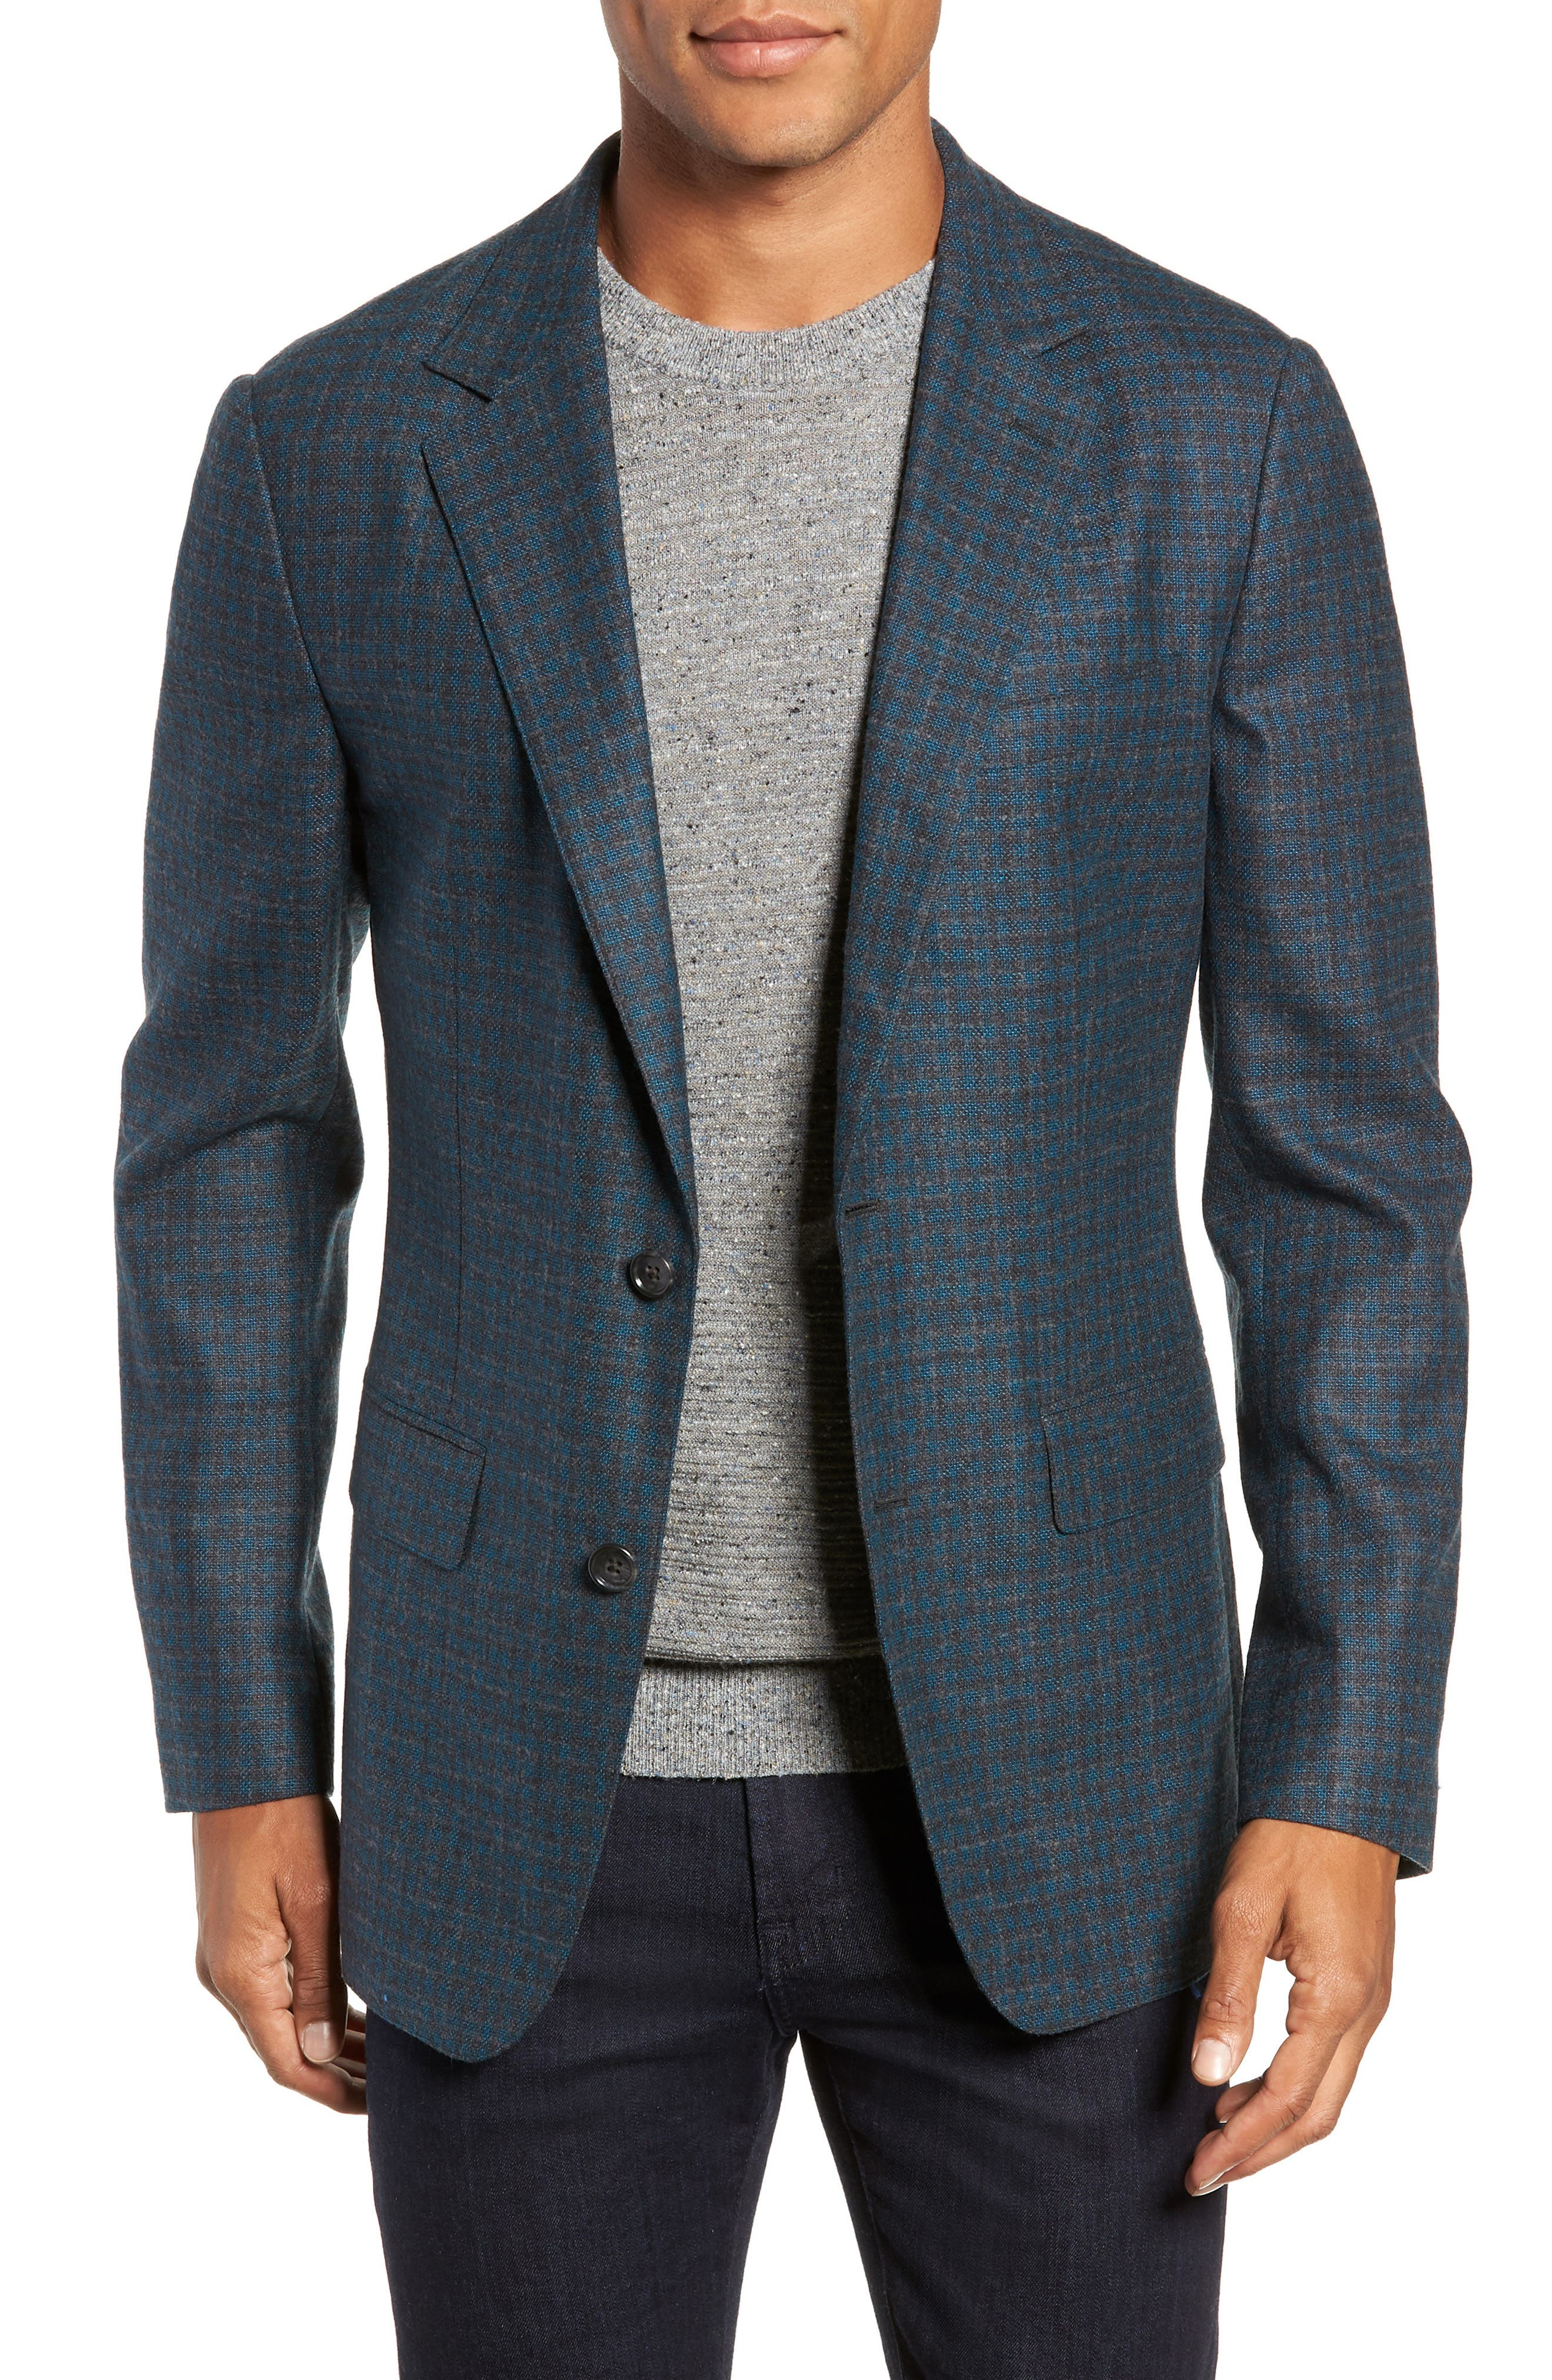 Jetsetter Slim Fit Unconstructed Blazer,                             Main thumbnail 1, color,                             TEAL AND GREY PLAID